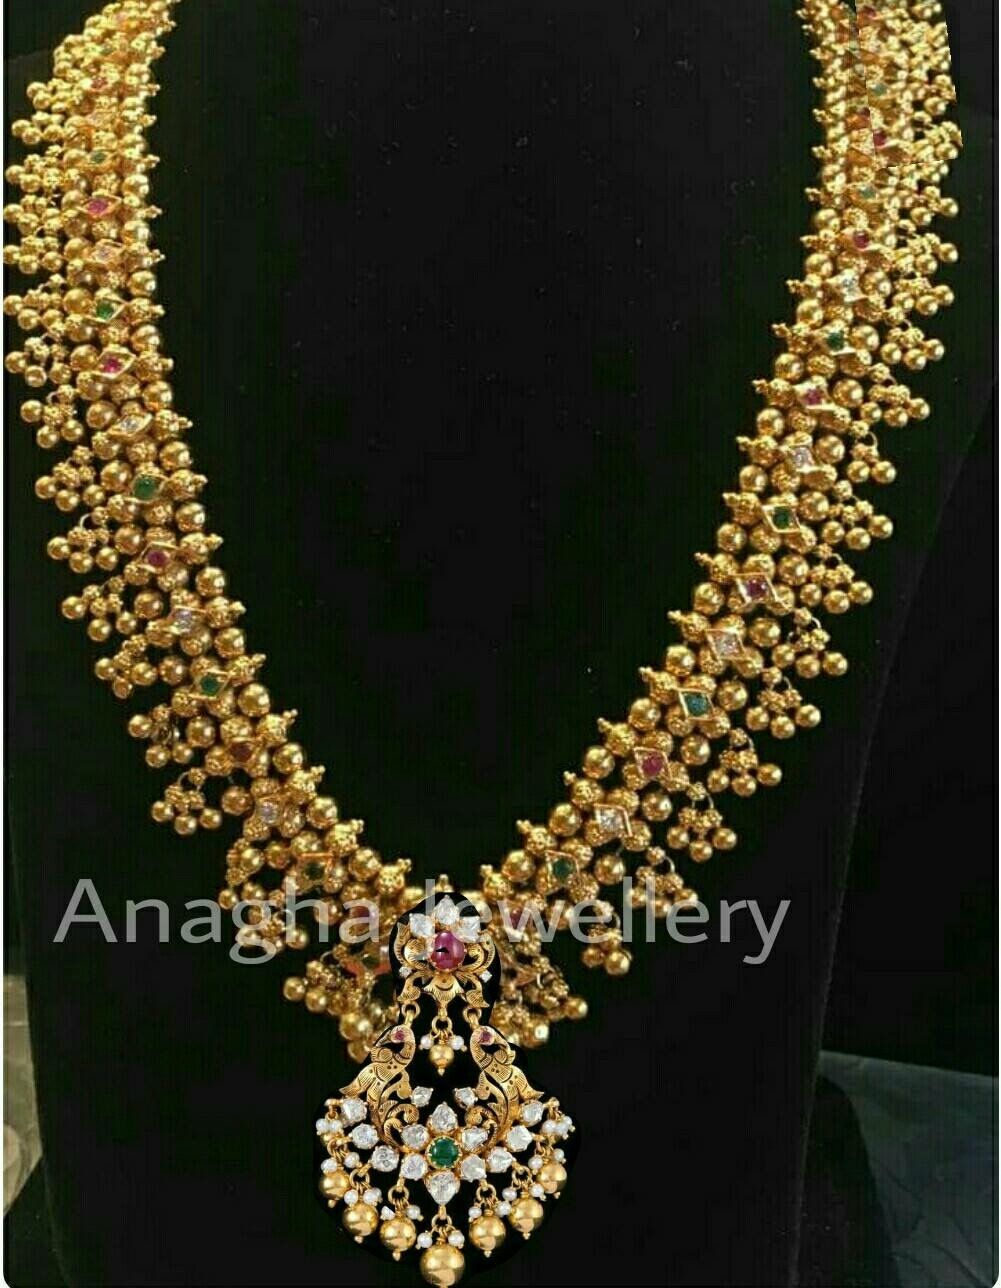 htm gallery includes earrings jewellery set gold details semi sets sizes combination online covering necklace kumaran jewelry different indian lengths available precious etc bridal of in